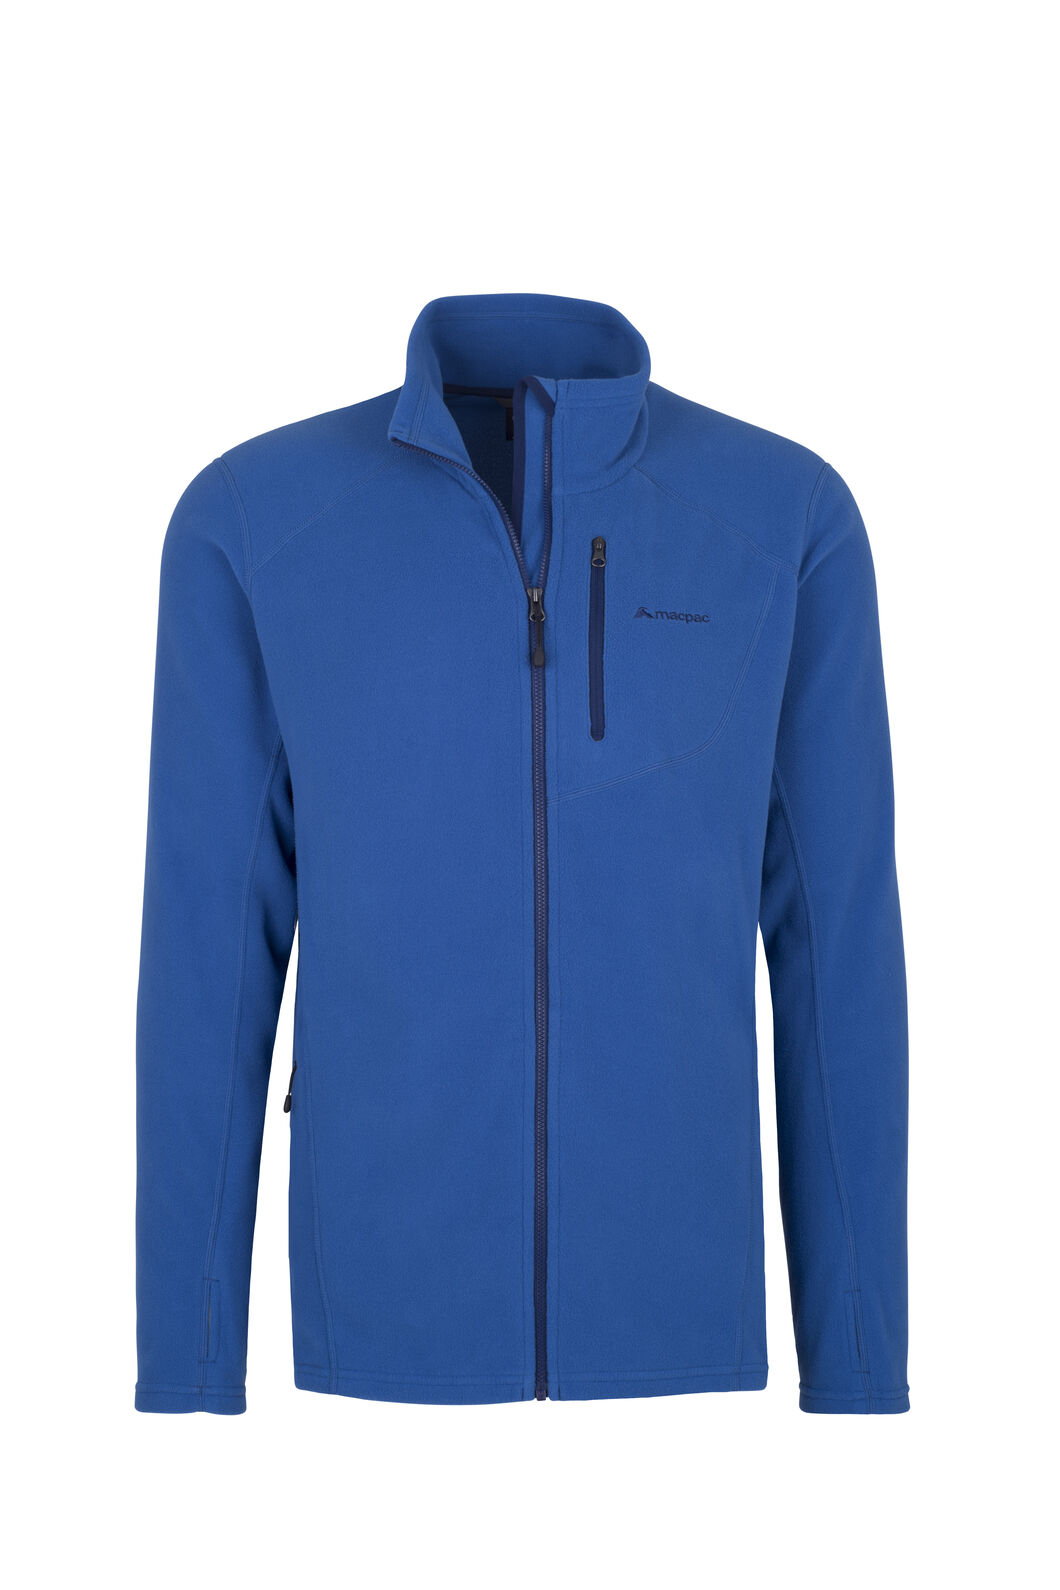 Macpac Kea Polartec® Micro Fleece® Jacket - Men's, True Blue, hi-res